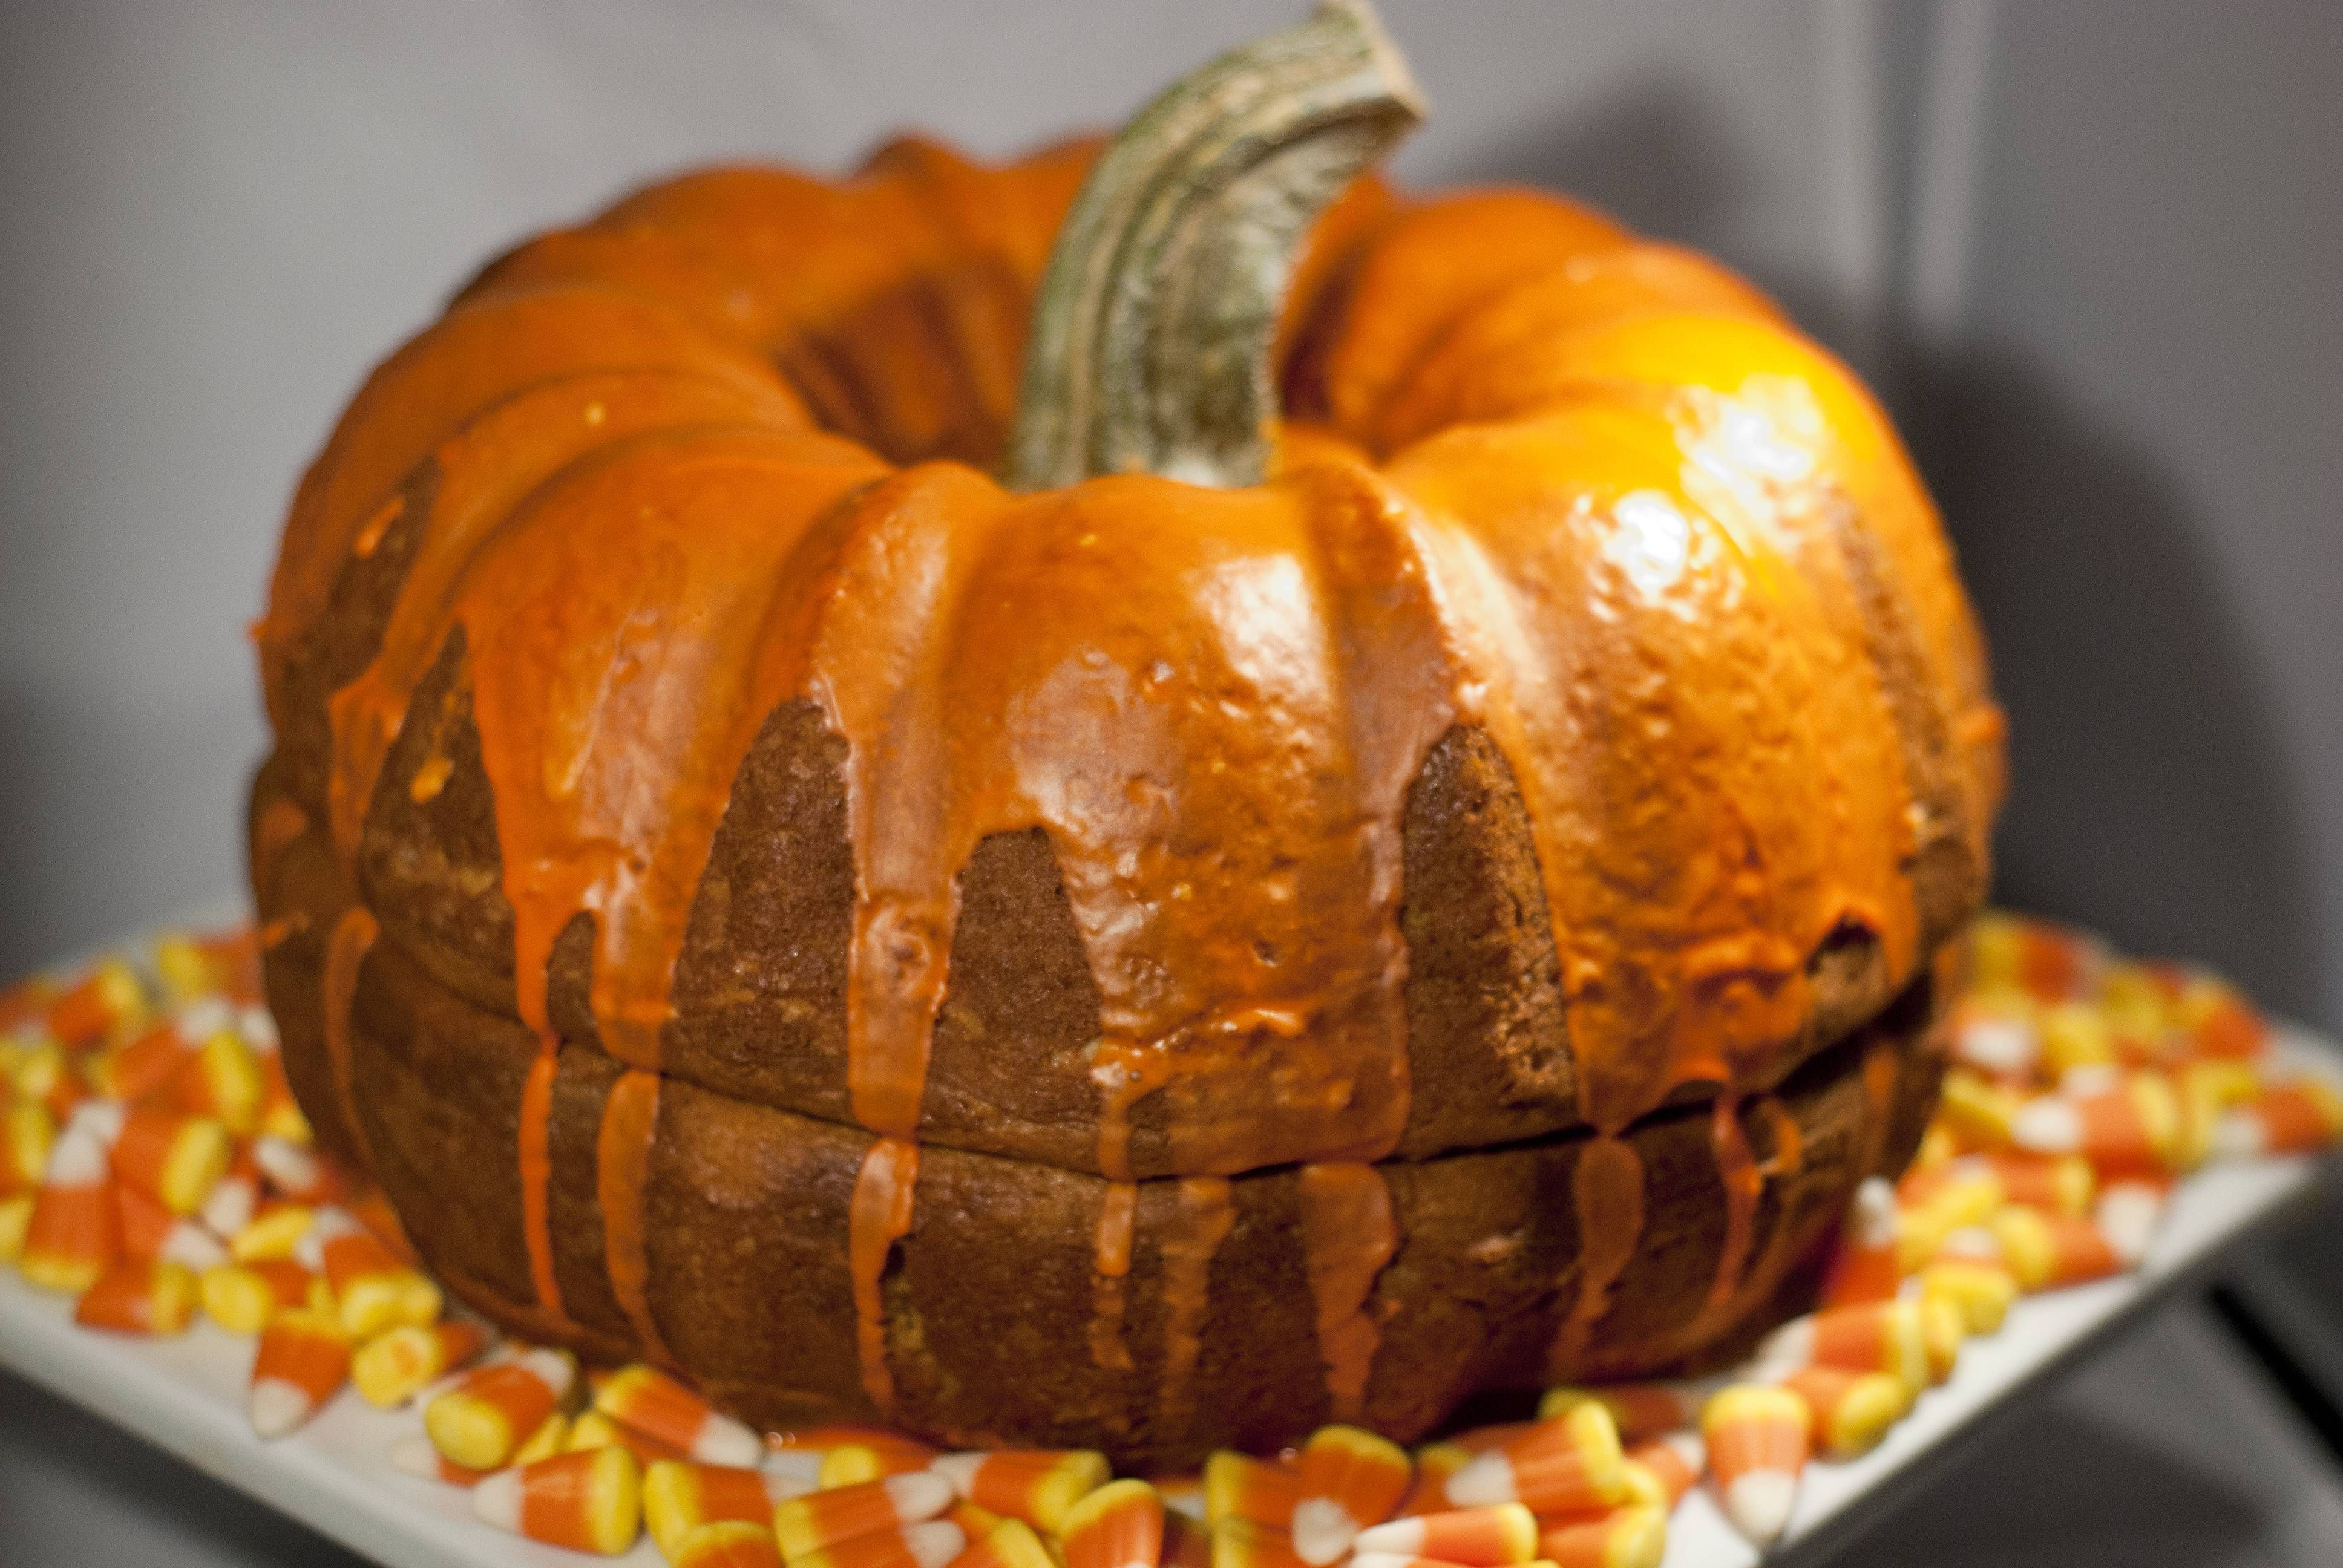 It didn't come out nearly as pretty as the original Pinspiration but, out of the Halloween spirit, this is my pumpkin shaped bundt cake and I am damn proud of it! #pumpkinshapedcake It didn't come out nearly as pretty as the original Pinspiration but, out of the Halloween spirit, this is my pumpkin shaped bundt cake and I am damn proud of it! #pumpkinshapedcake It didn't come out nearly as pretty as the original Pinspiration but, out of the Halloween spirit, this is my pumpkin shaped bundt cake #pumpkinshapedcake